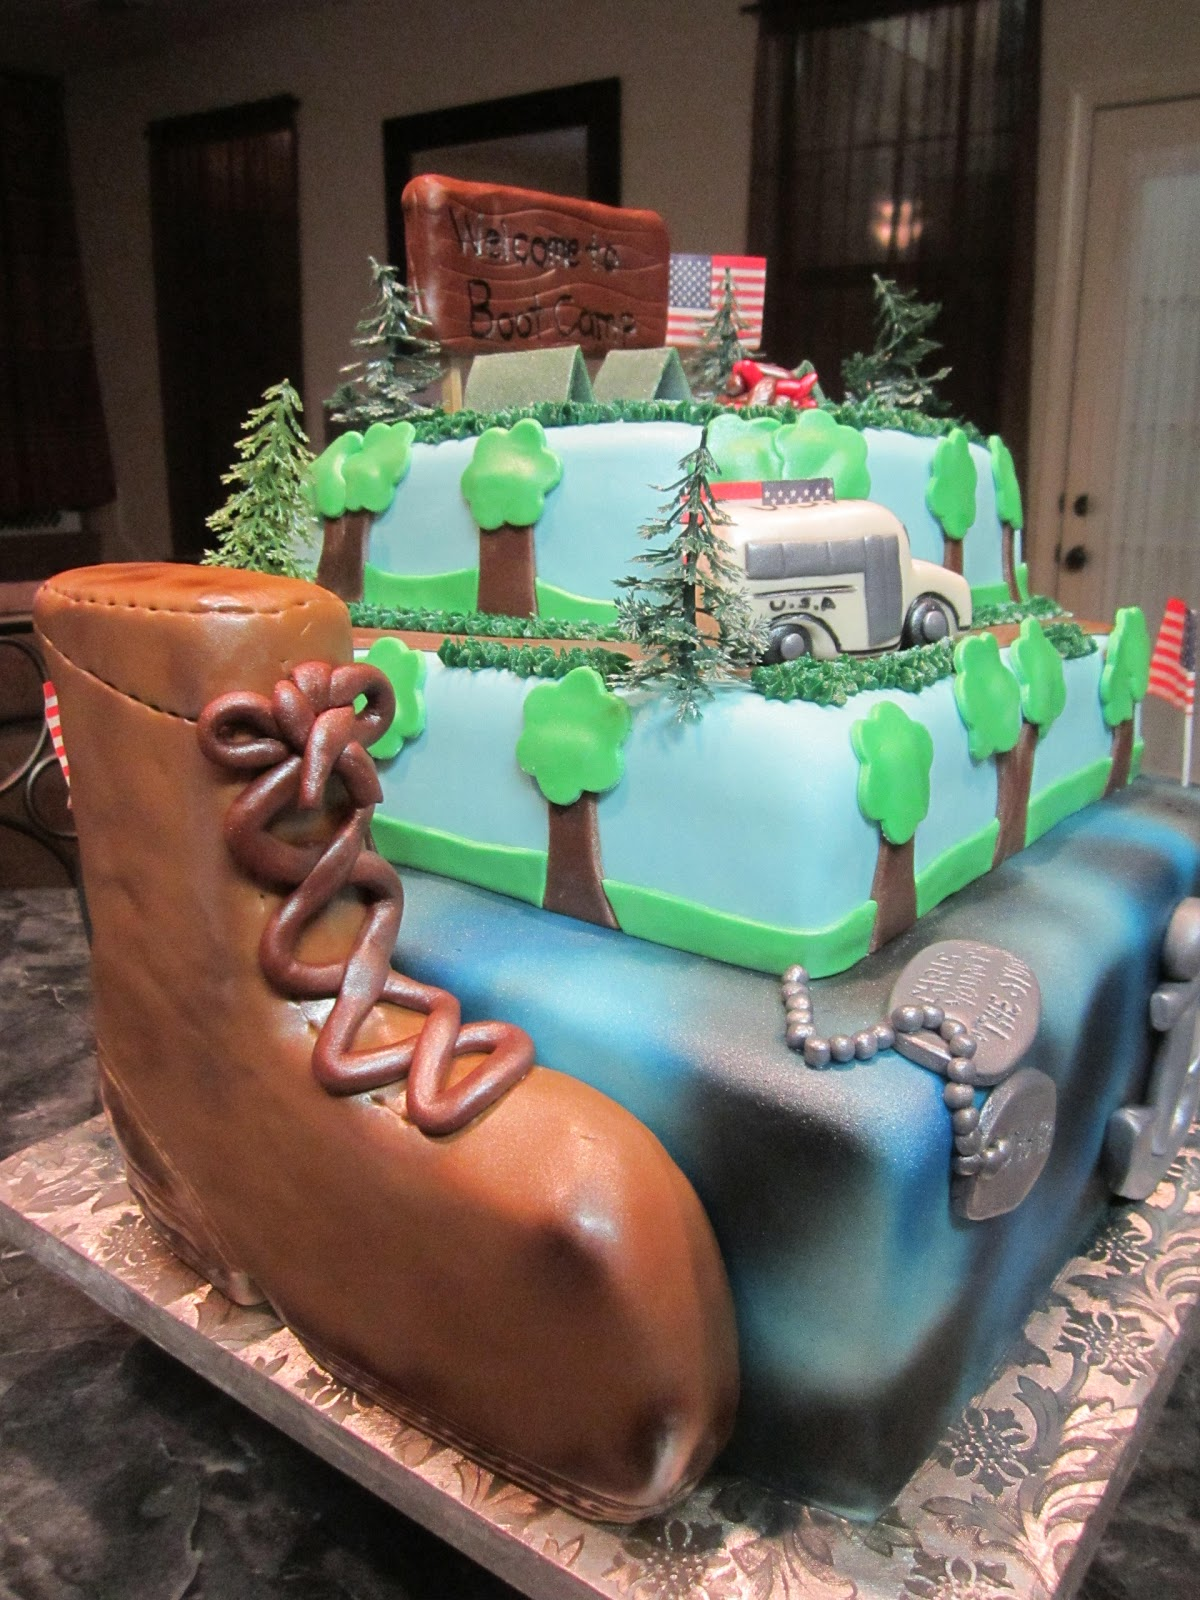 Mymonicakes Boot Camp Cake W Obstacle Course Cake